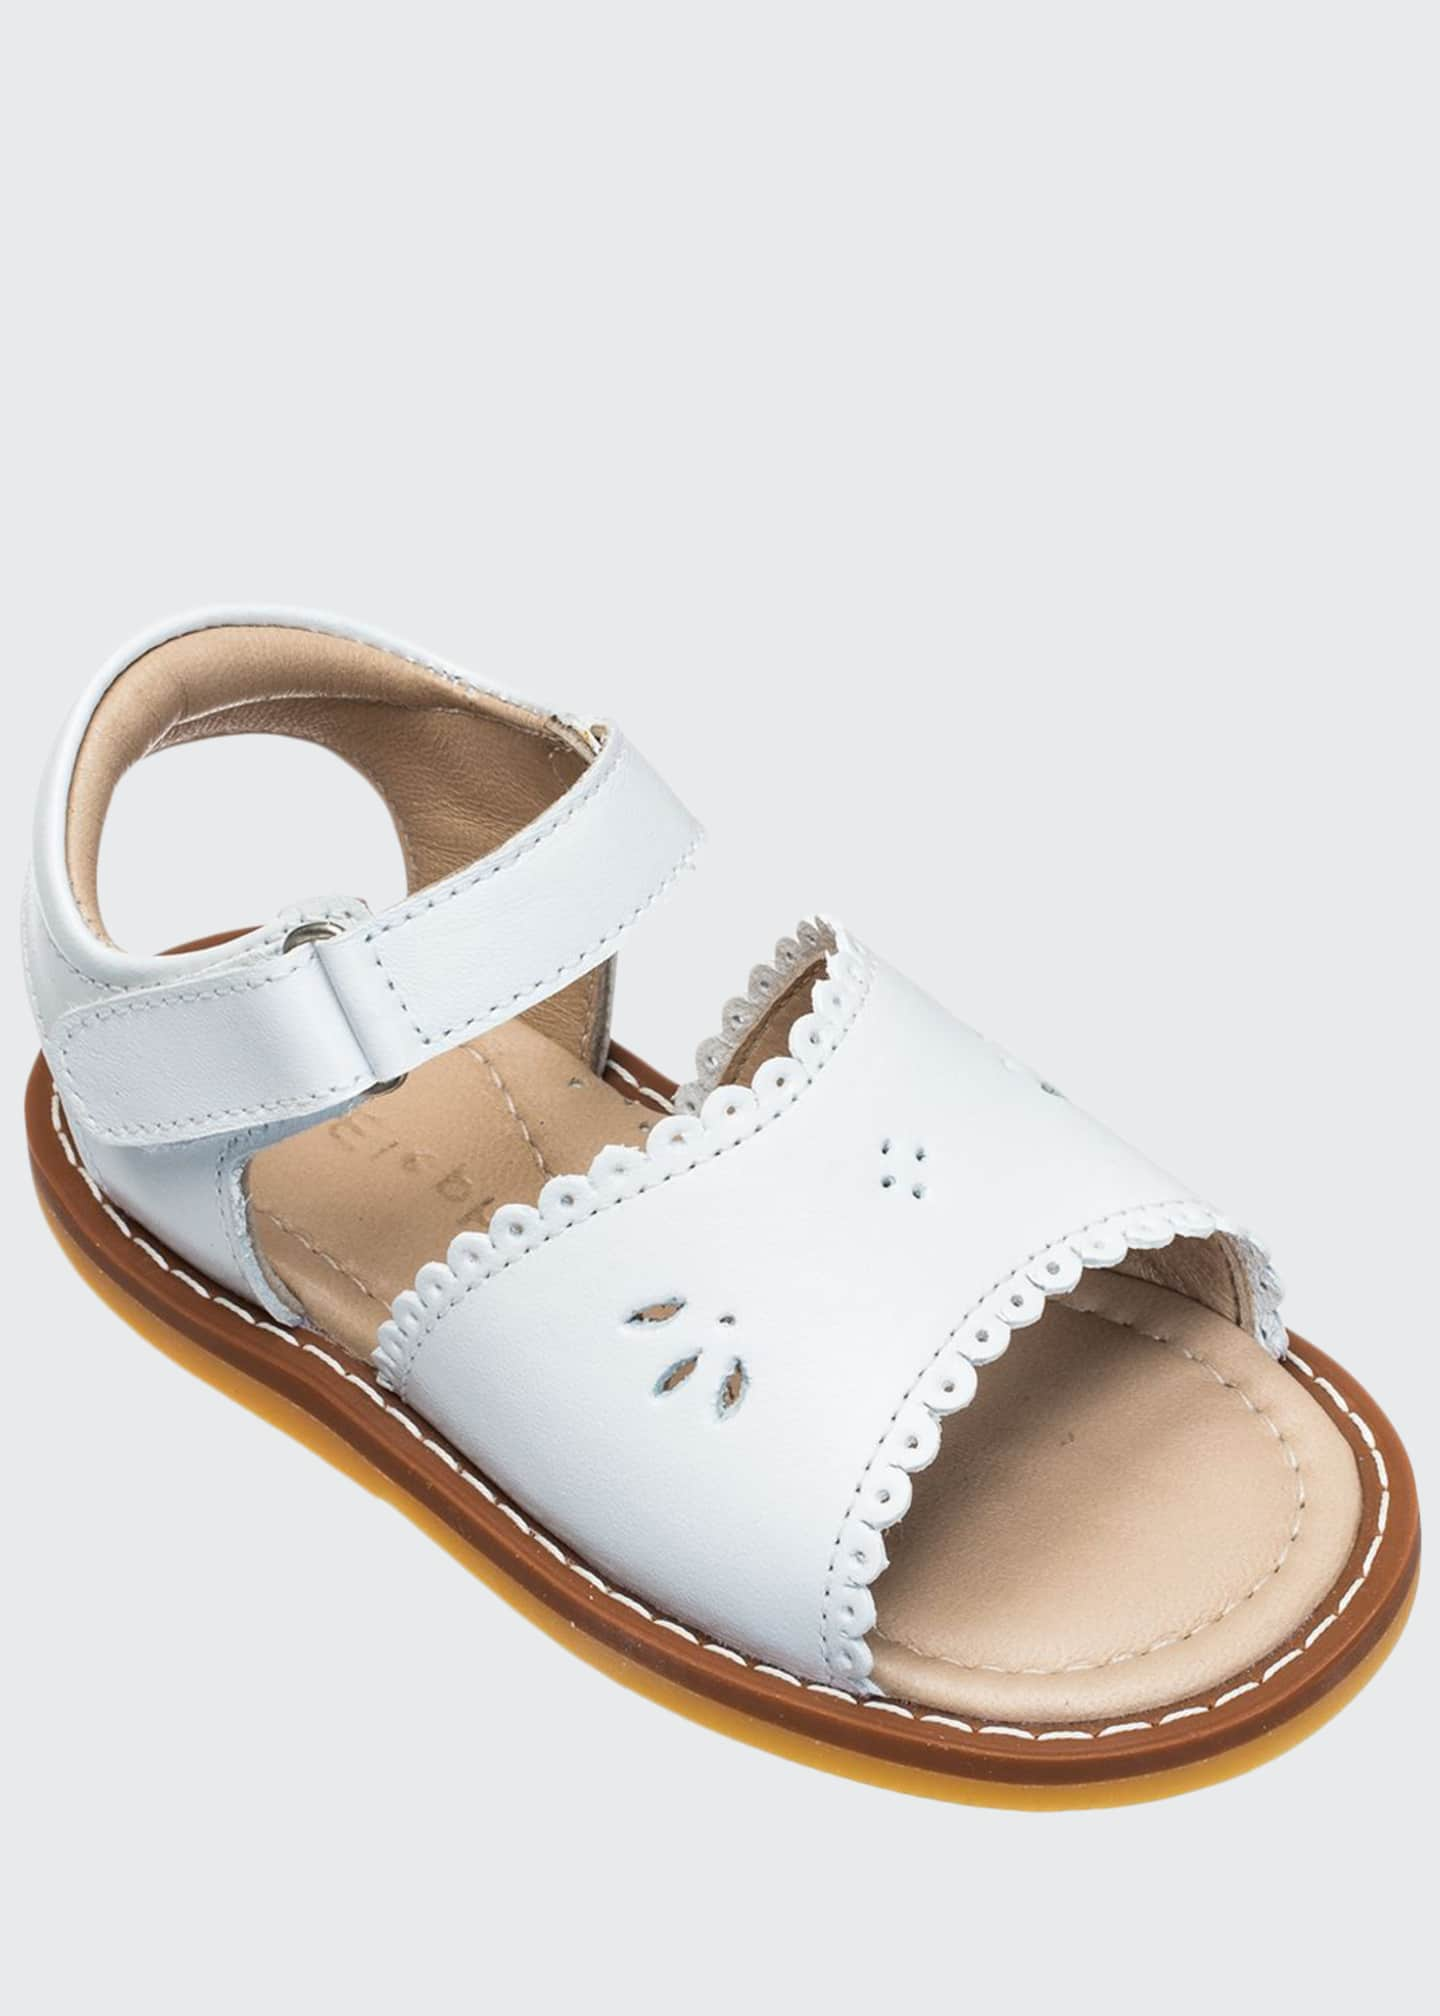 Elephantito Girls' Classic Leather Scalloped Sandal, Toddler/Kids